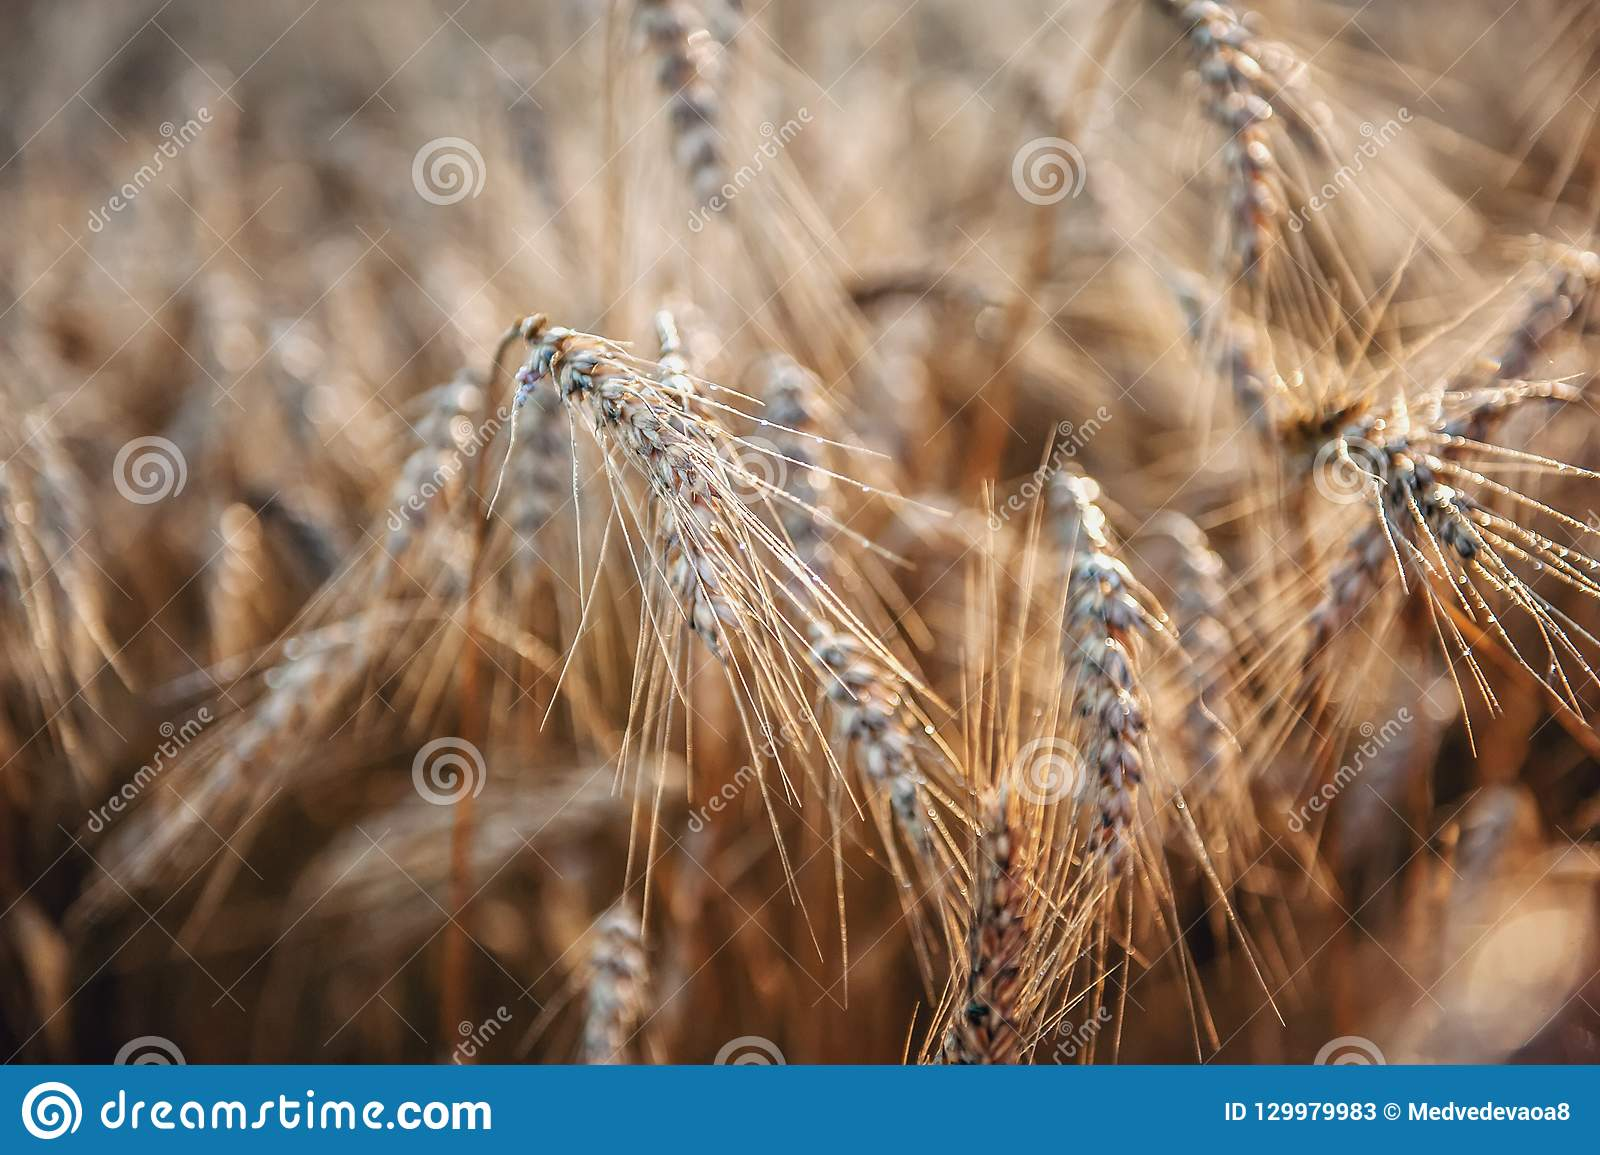 Wheat ripe ears in the morning dew close-up. Background.